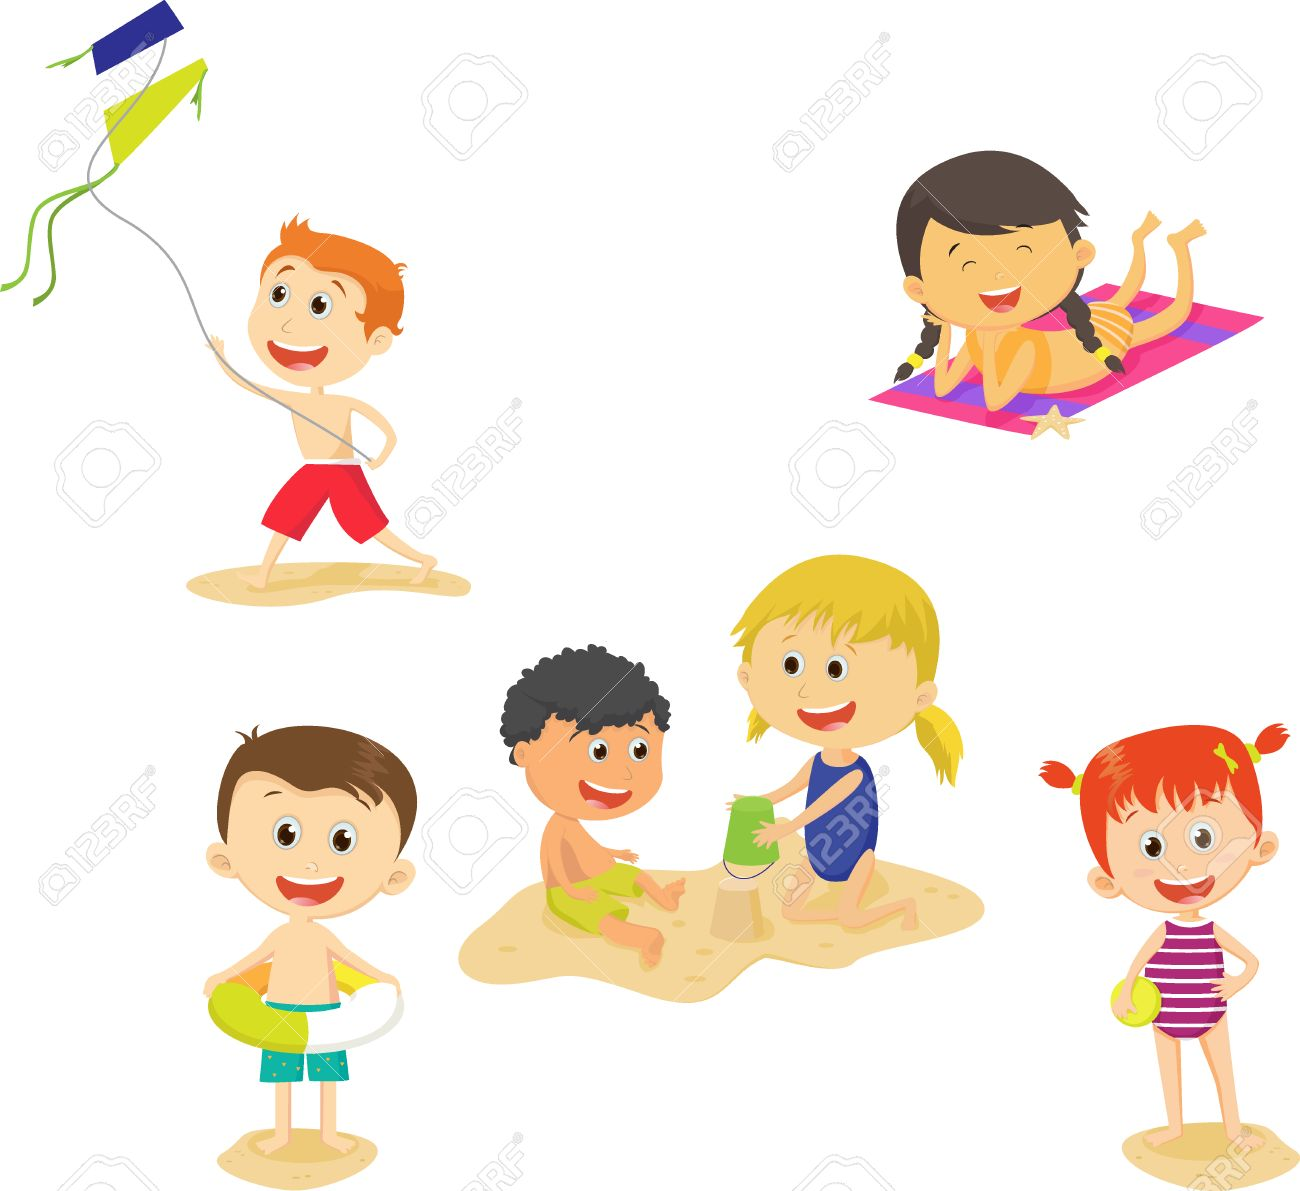 Collection Of Cartoon Kids Having Fun On Beach Summer Royalty Free Cliparts Vectors And Stock Illustration Image 79854280